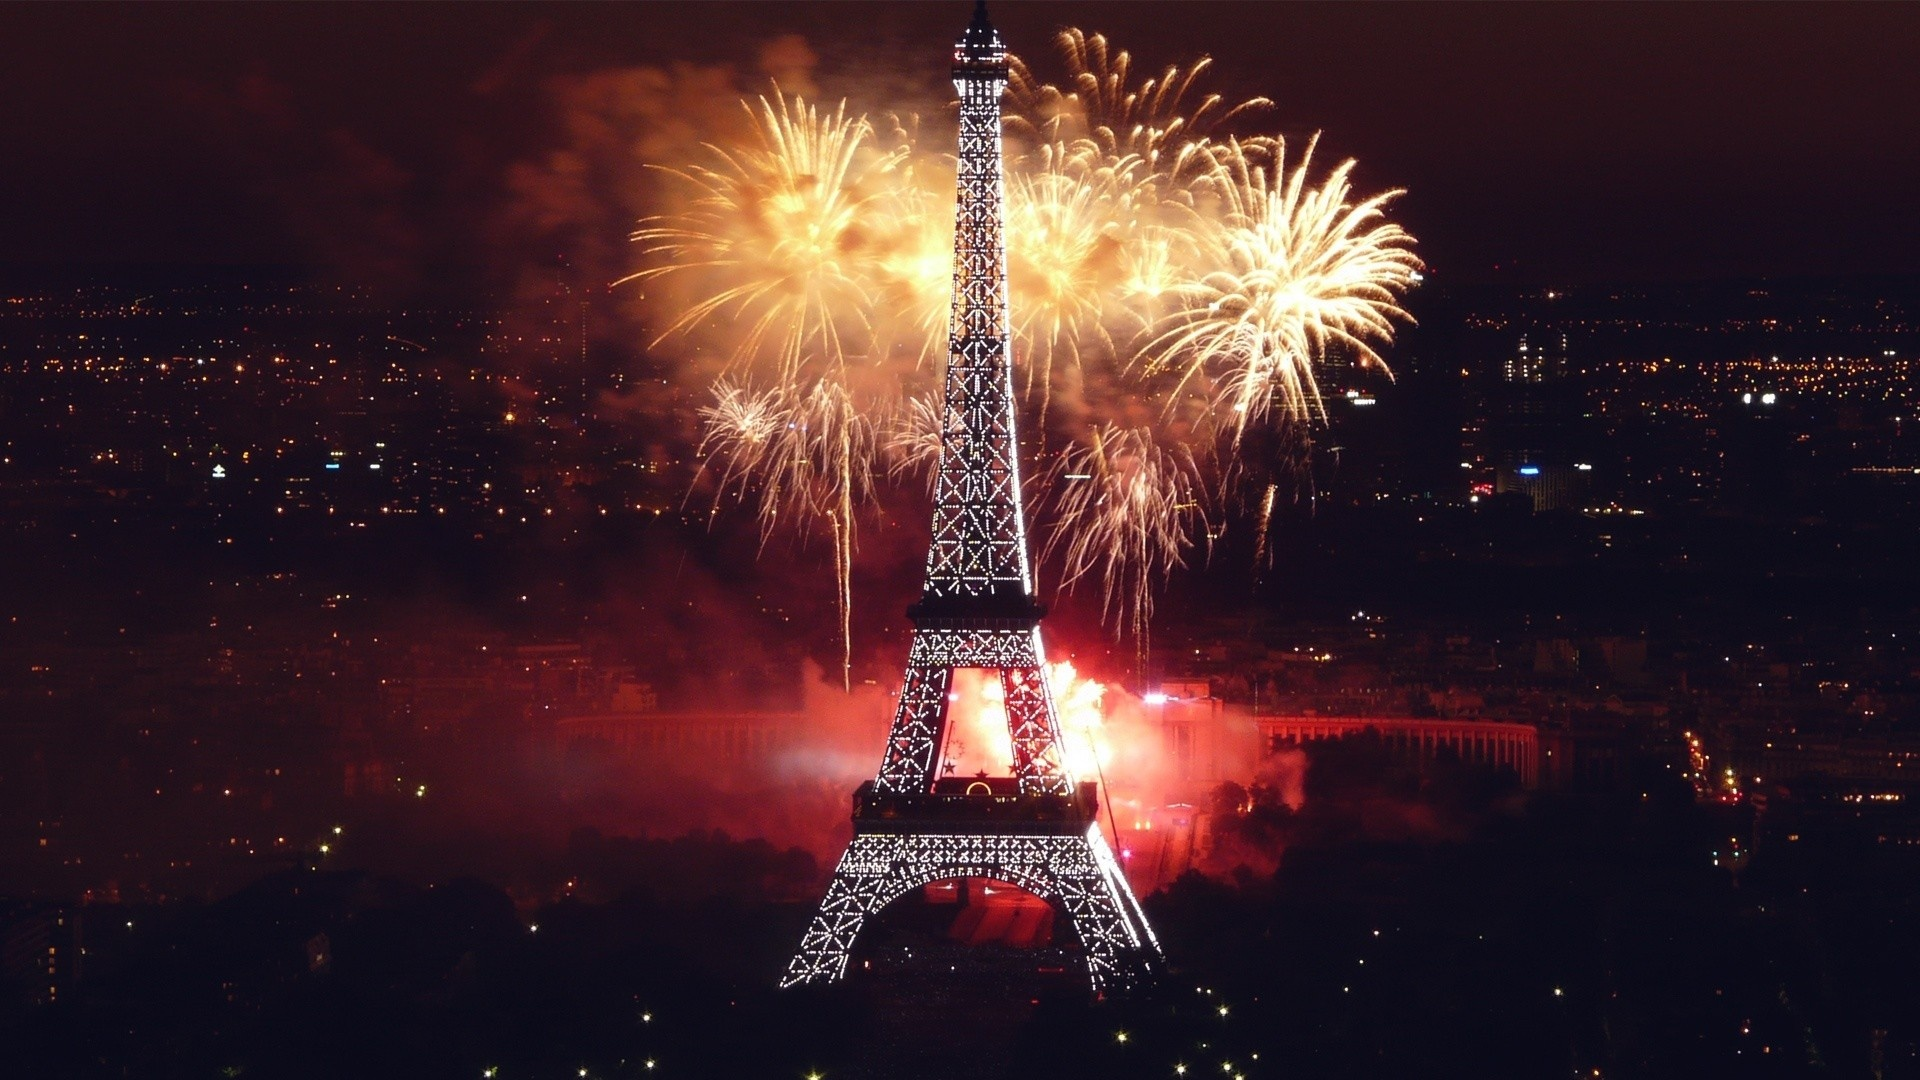 Fireworks in Paris 2015: The best pictures Fireworks in Paris 2015: The best pictures eiffel tower paris fireworks celebration happy new year